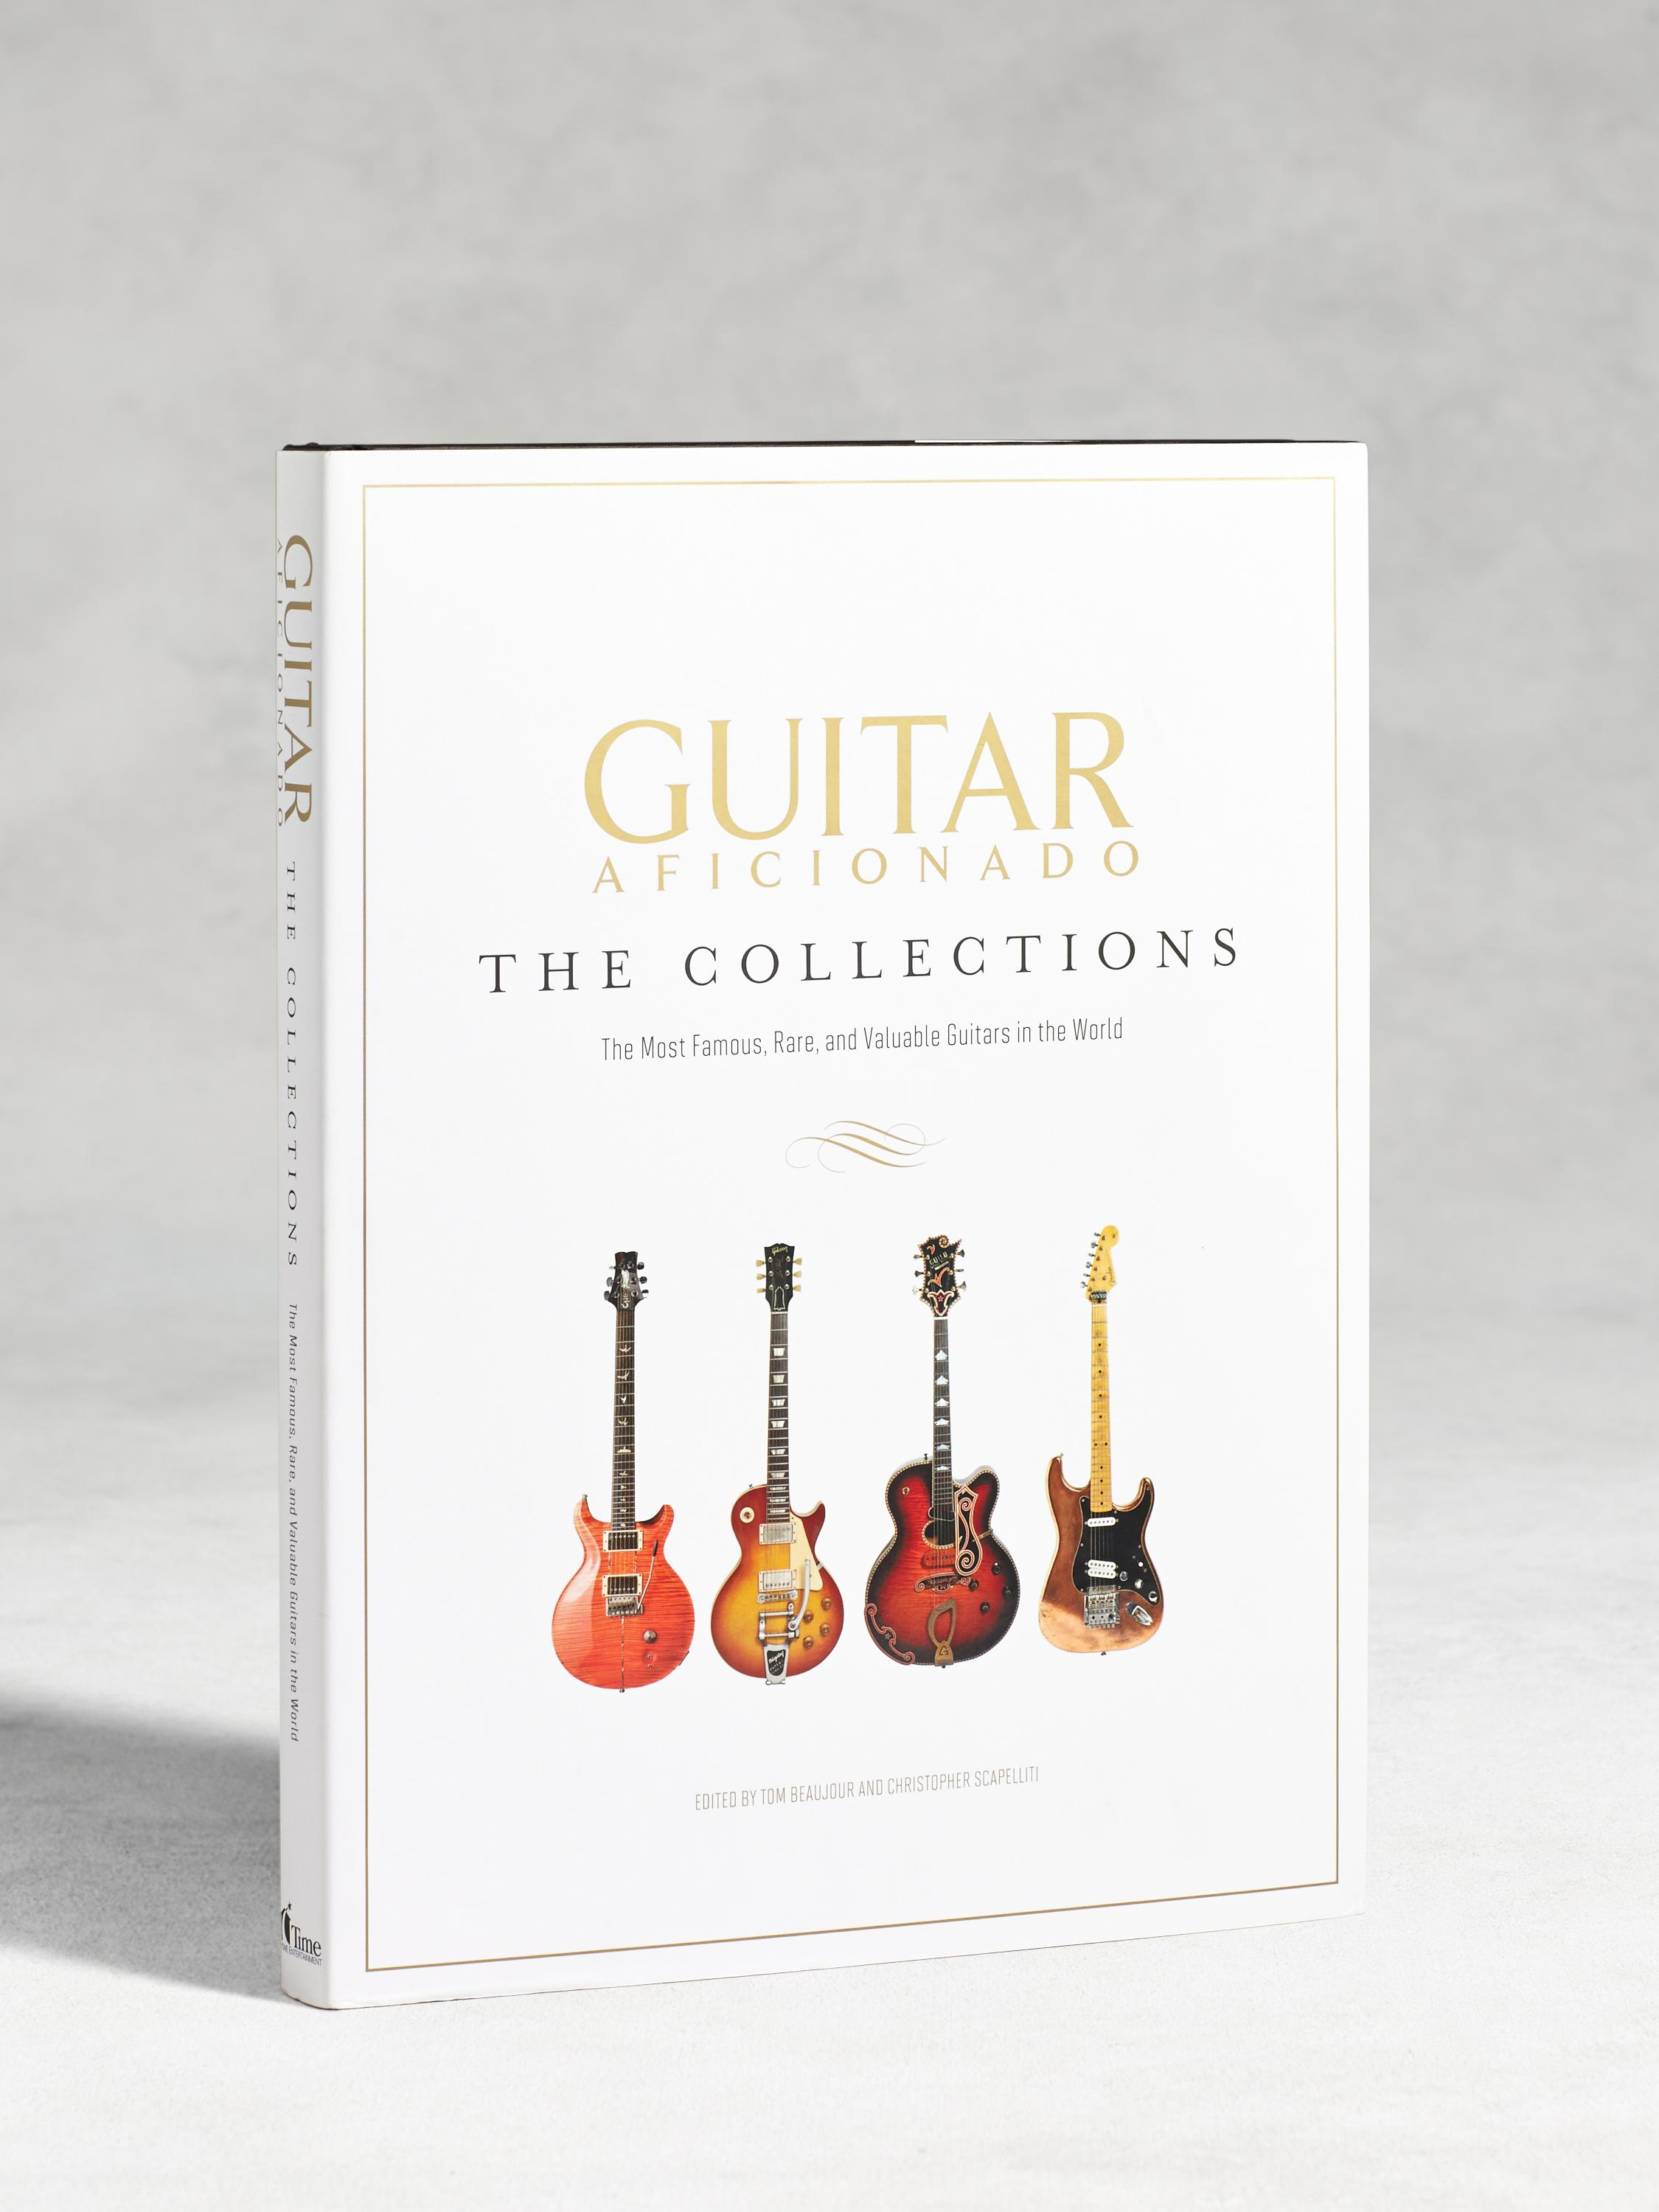 Guitar Aficionado: The Collections by Tom Beaujour